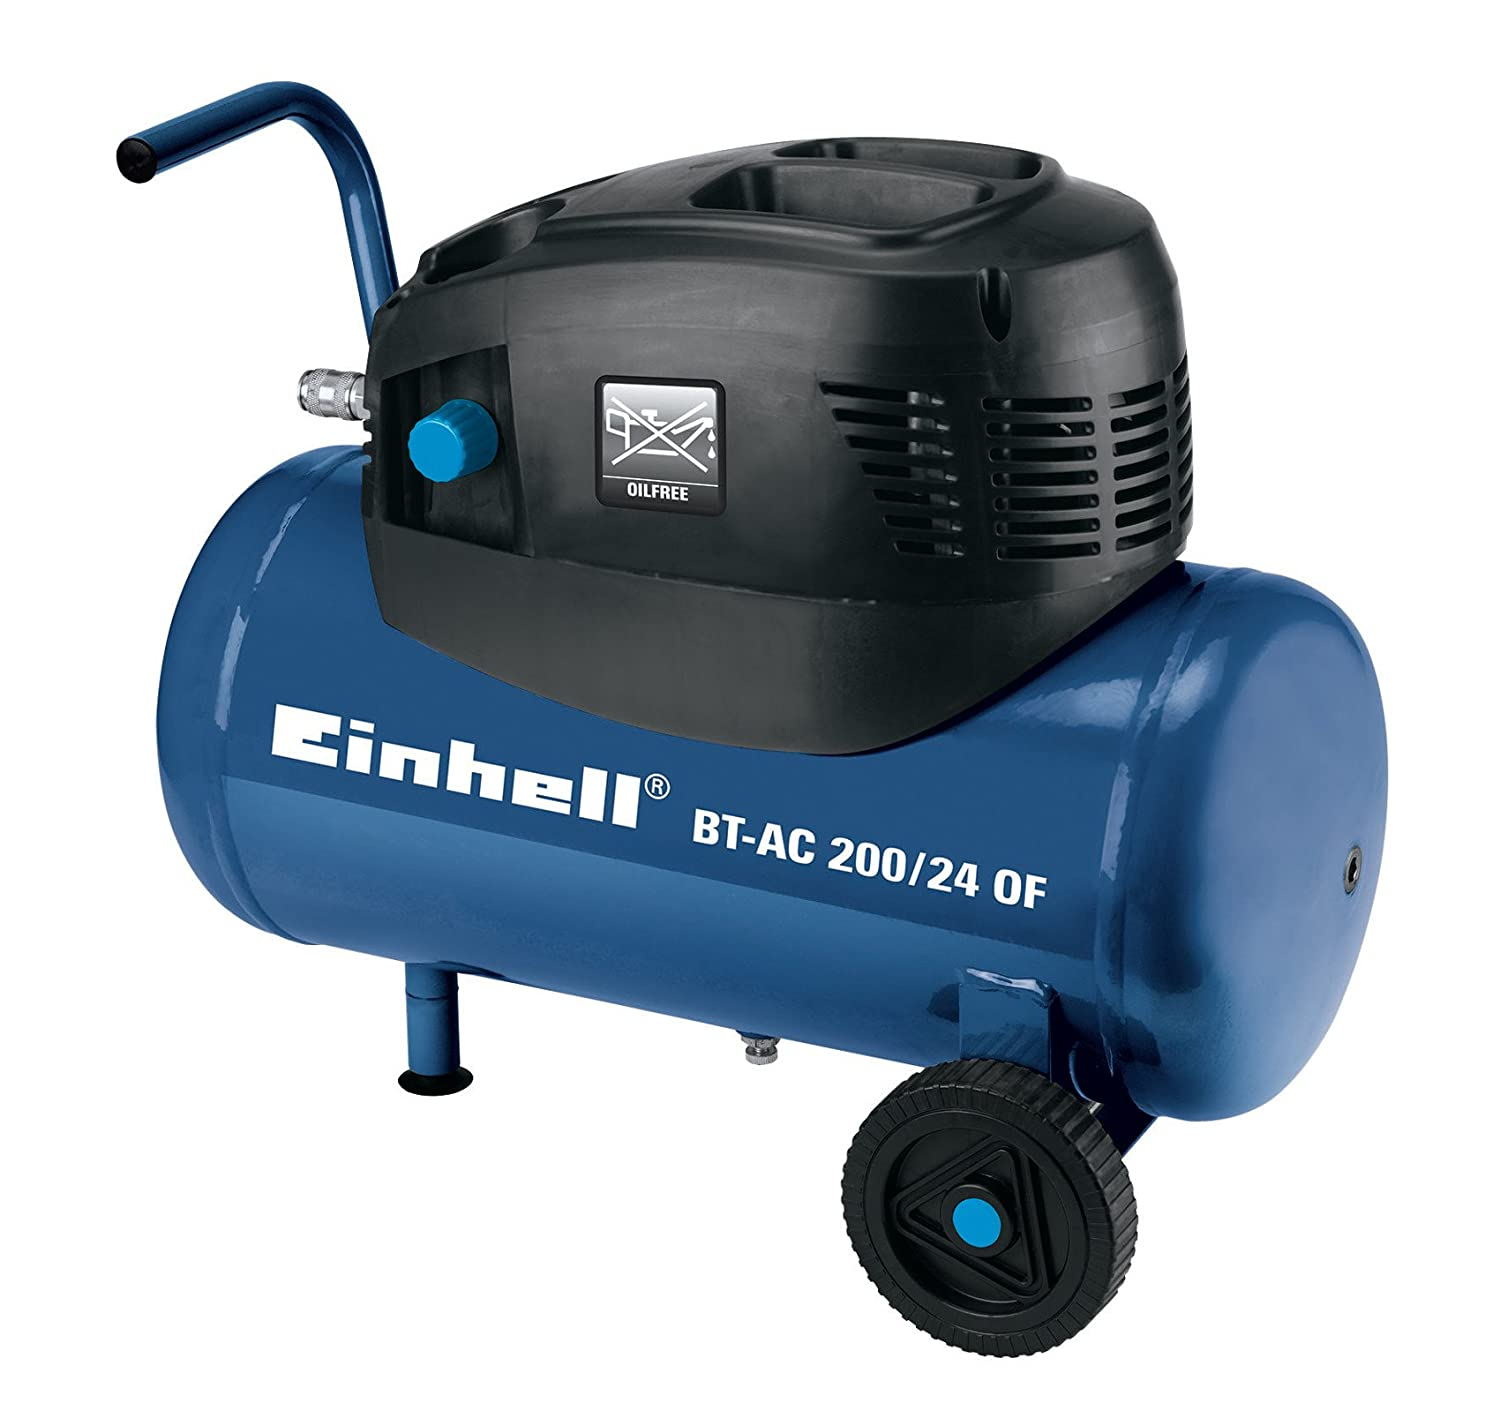 Einhell BT-AC 200/24 OF Kompressor